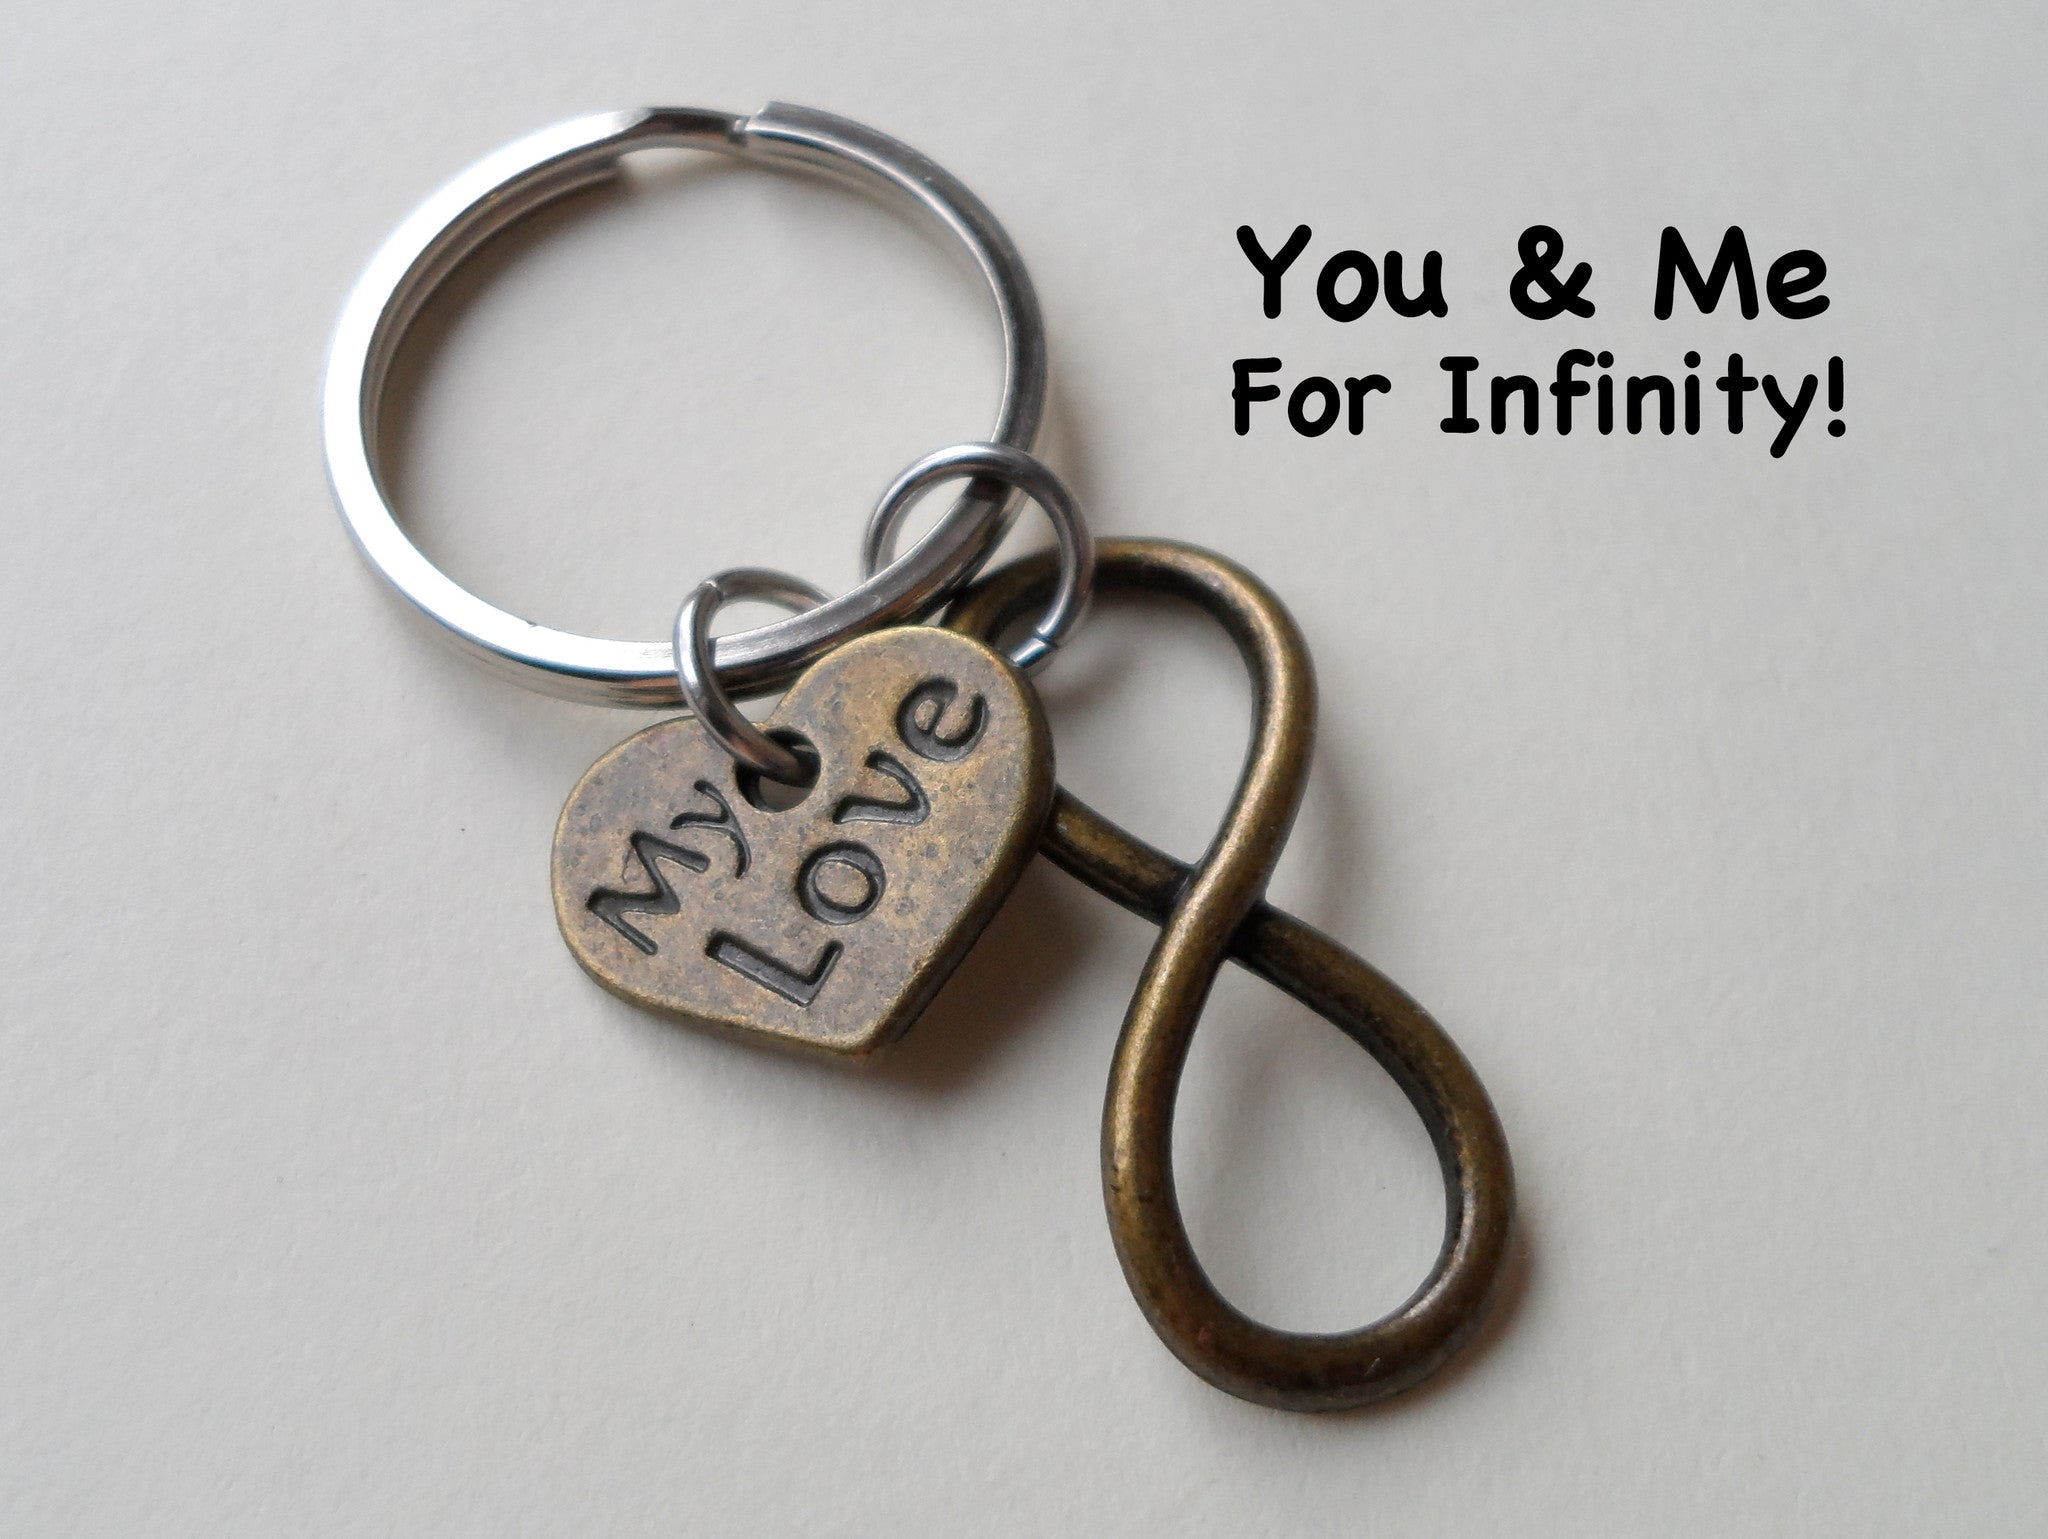 My Love Bronze Infinity Symbol Keychain Jewelryeveryday